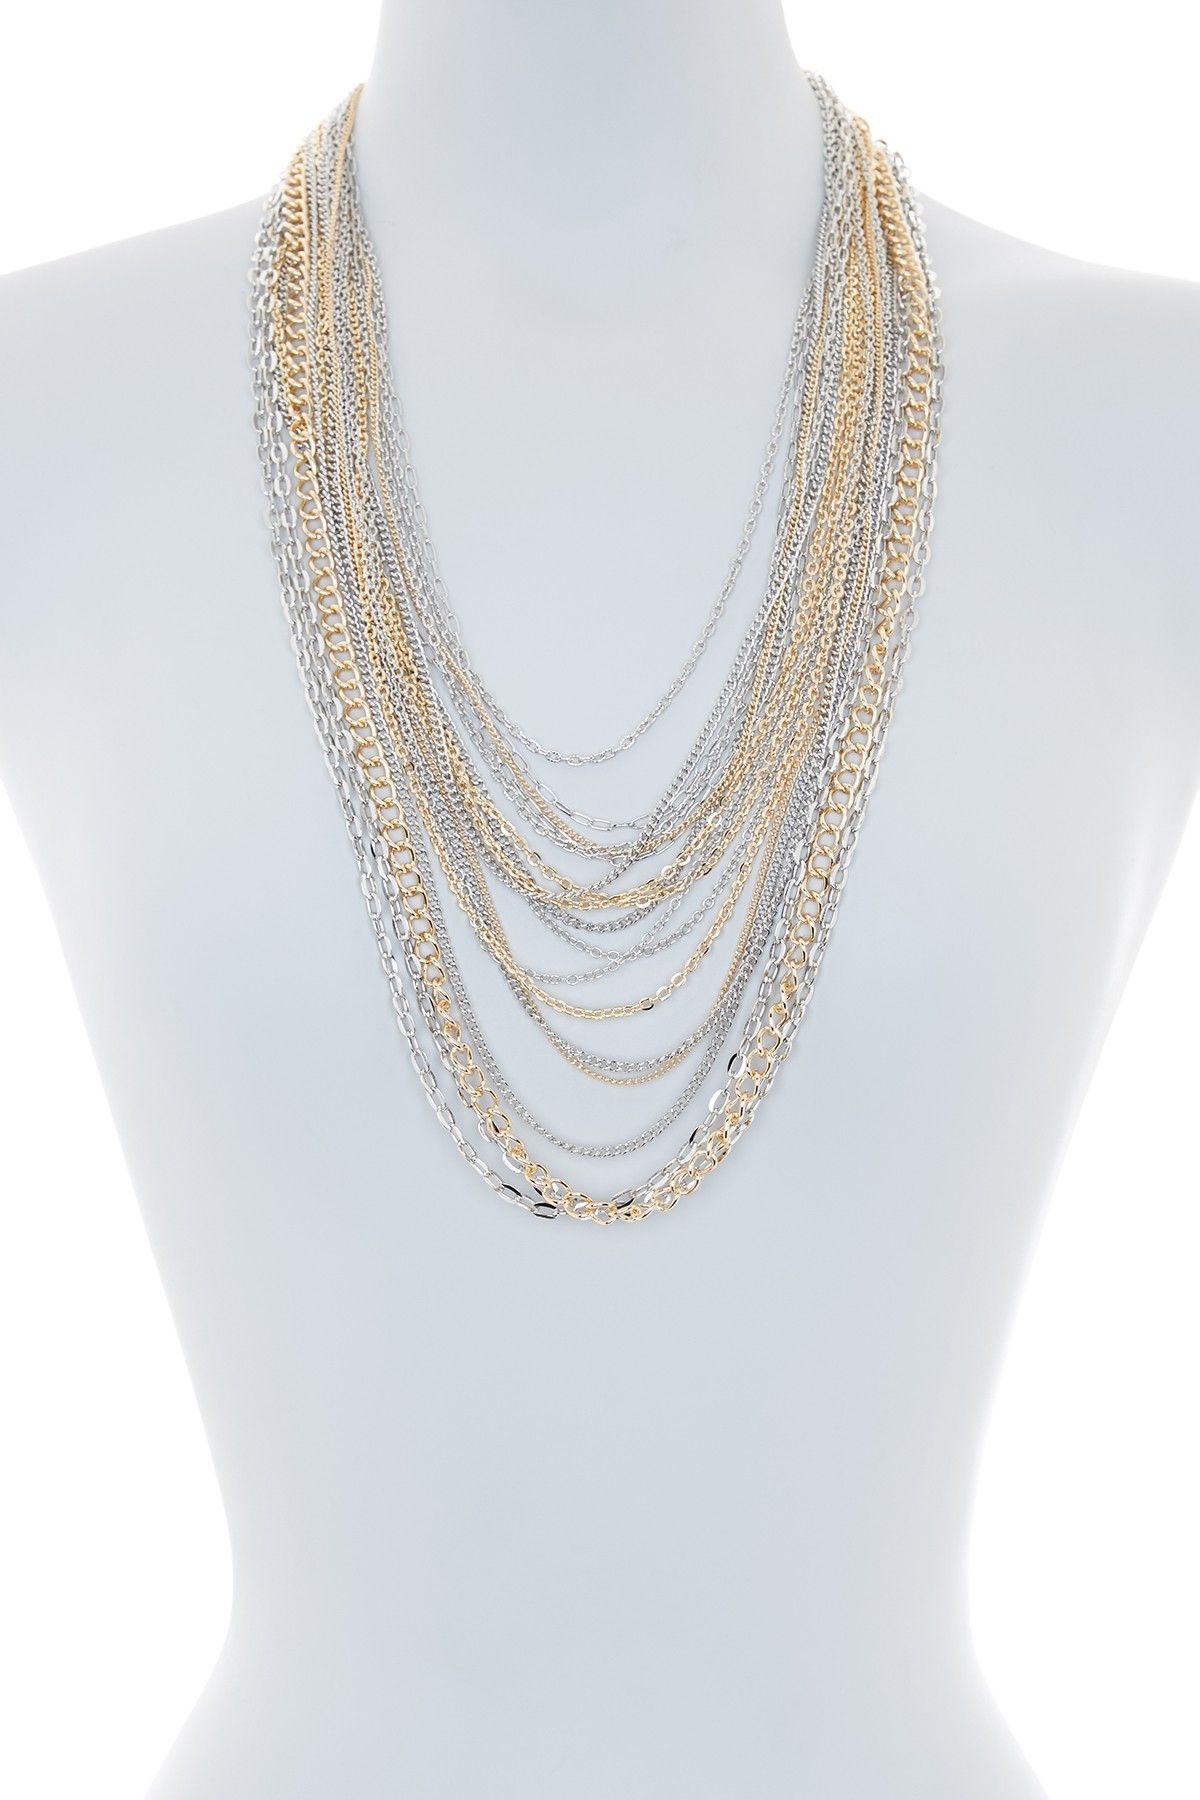 Multi style chain necklace by natasha accessories on nordstromrack